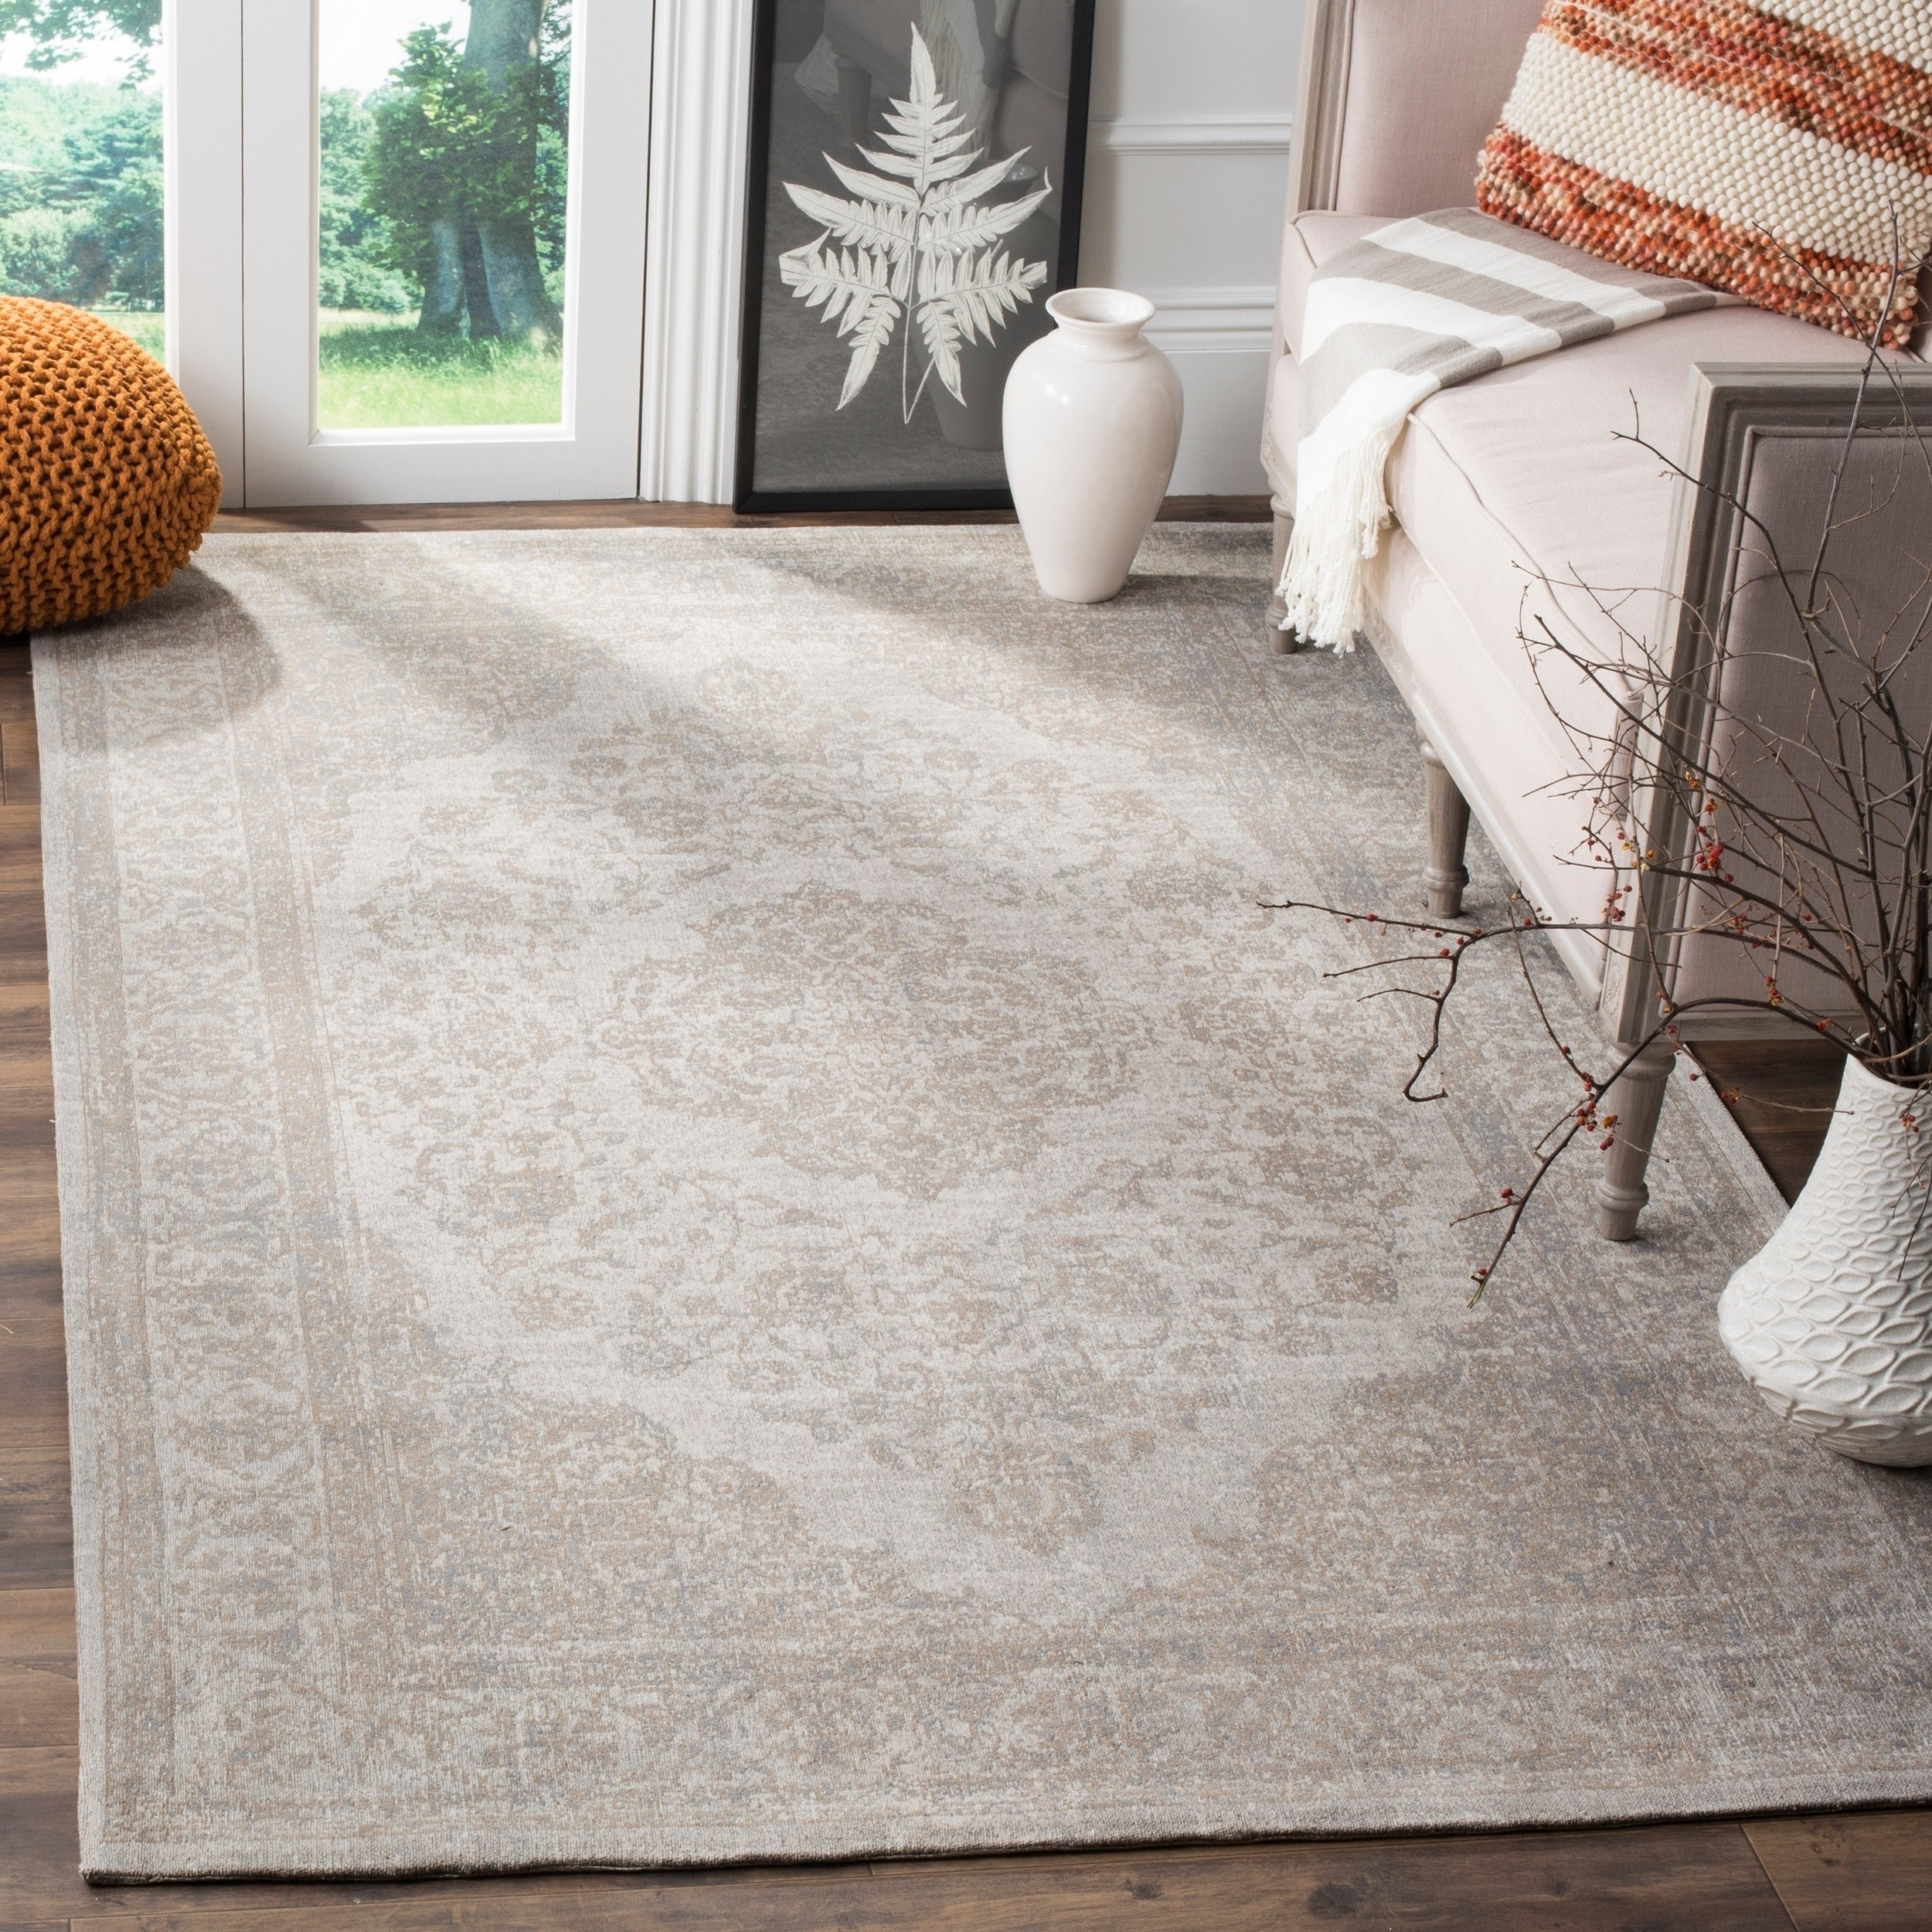 Safavieh Classic Vintage Beige Cotton Distressed Rug (4' ...